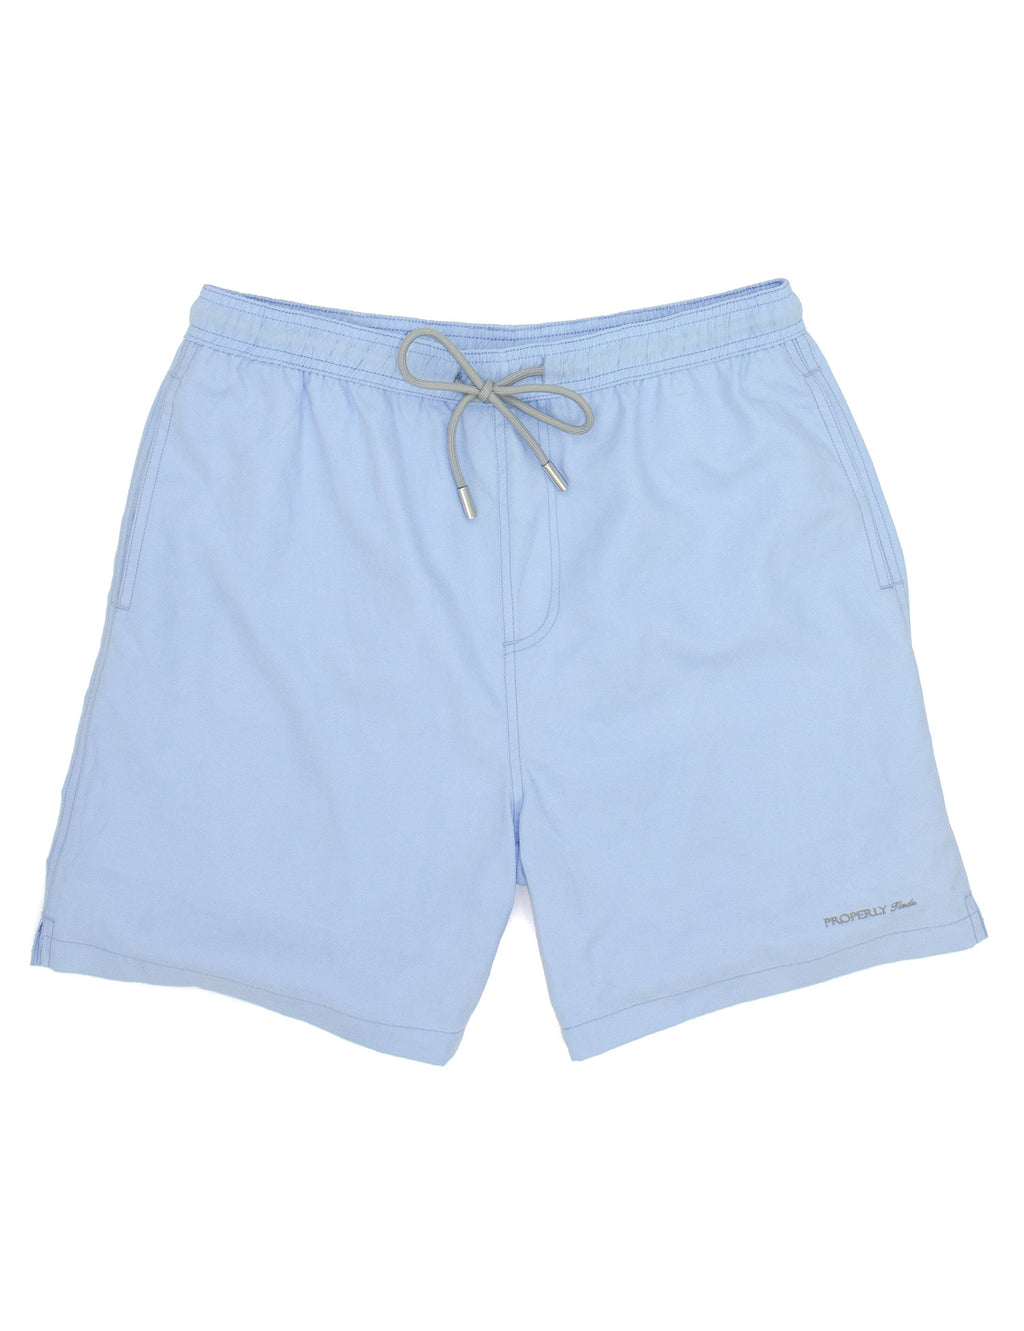 Properly Tied Boys Swim Trunks - Light Blue